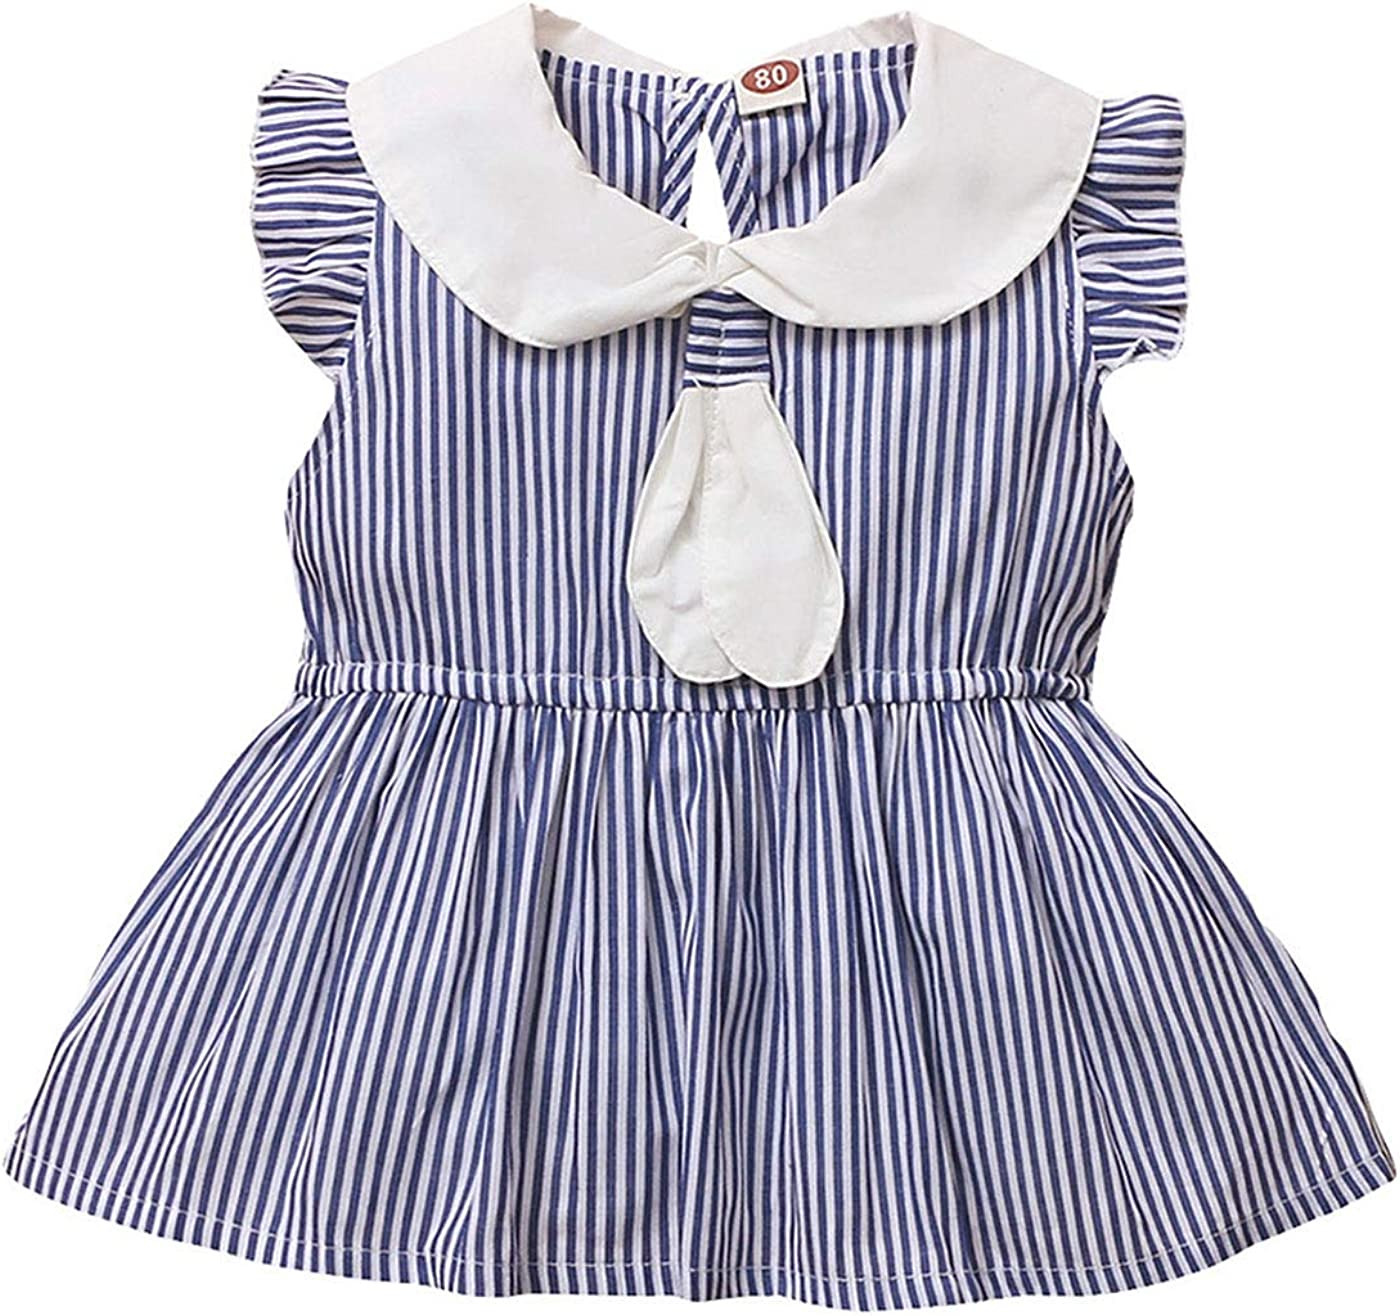 LAPA Baby Girls One Pieces Dress, Cute Striped with Bow Tie Ruffle Sleeve with Back Key Hole for Newborn Infant Girl